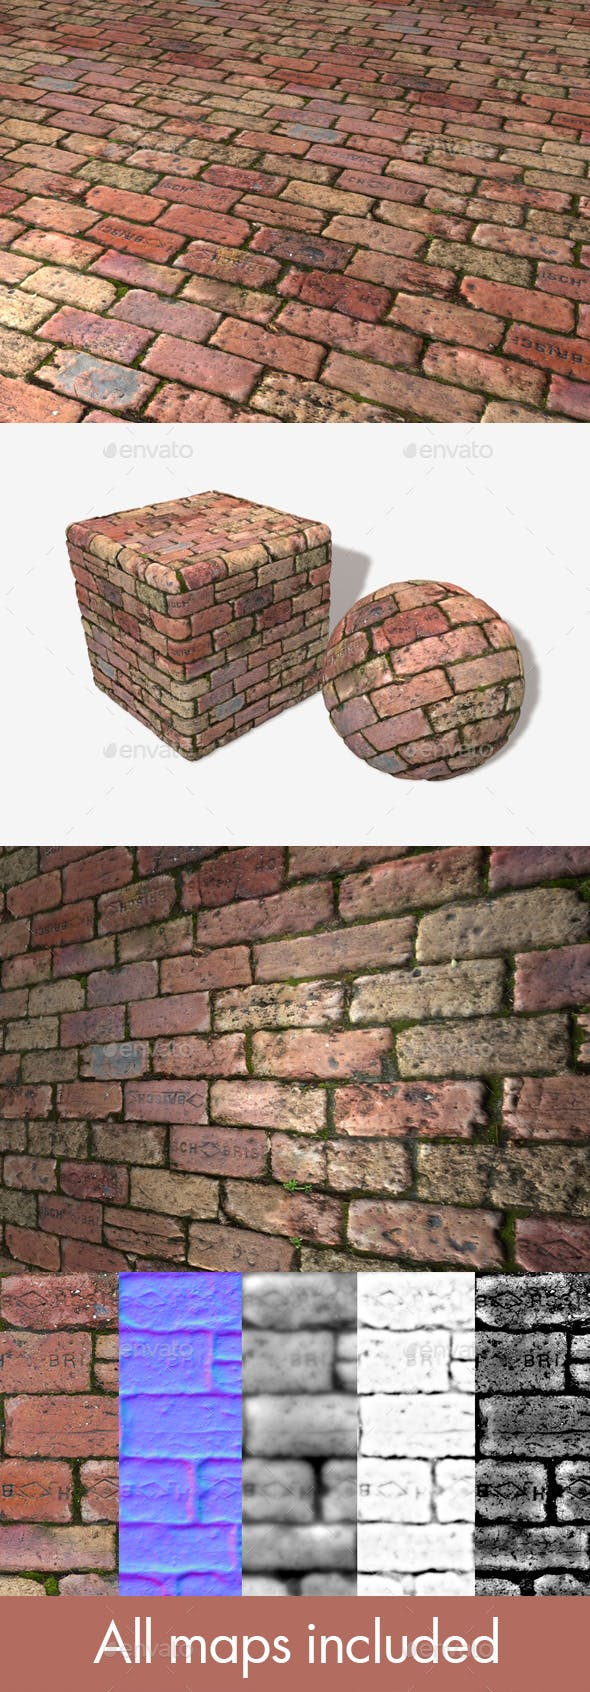 Old Rough Mossy Bricks Seamless Texture - 3DOcean Item for Sale